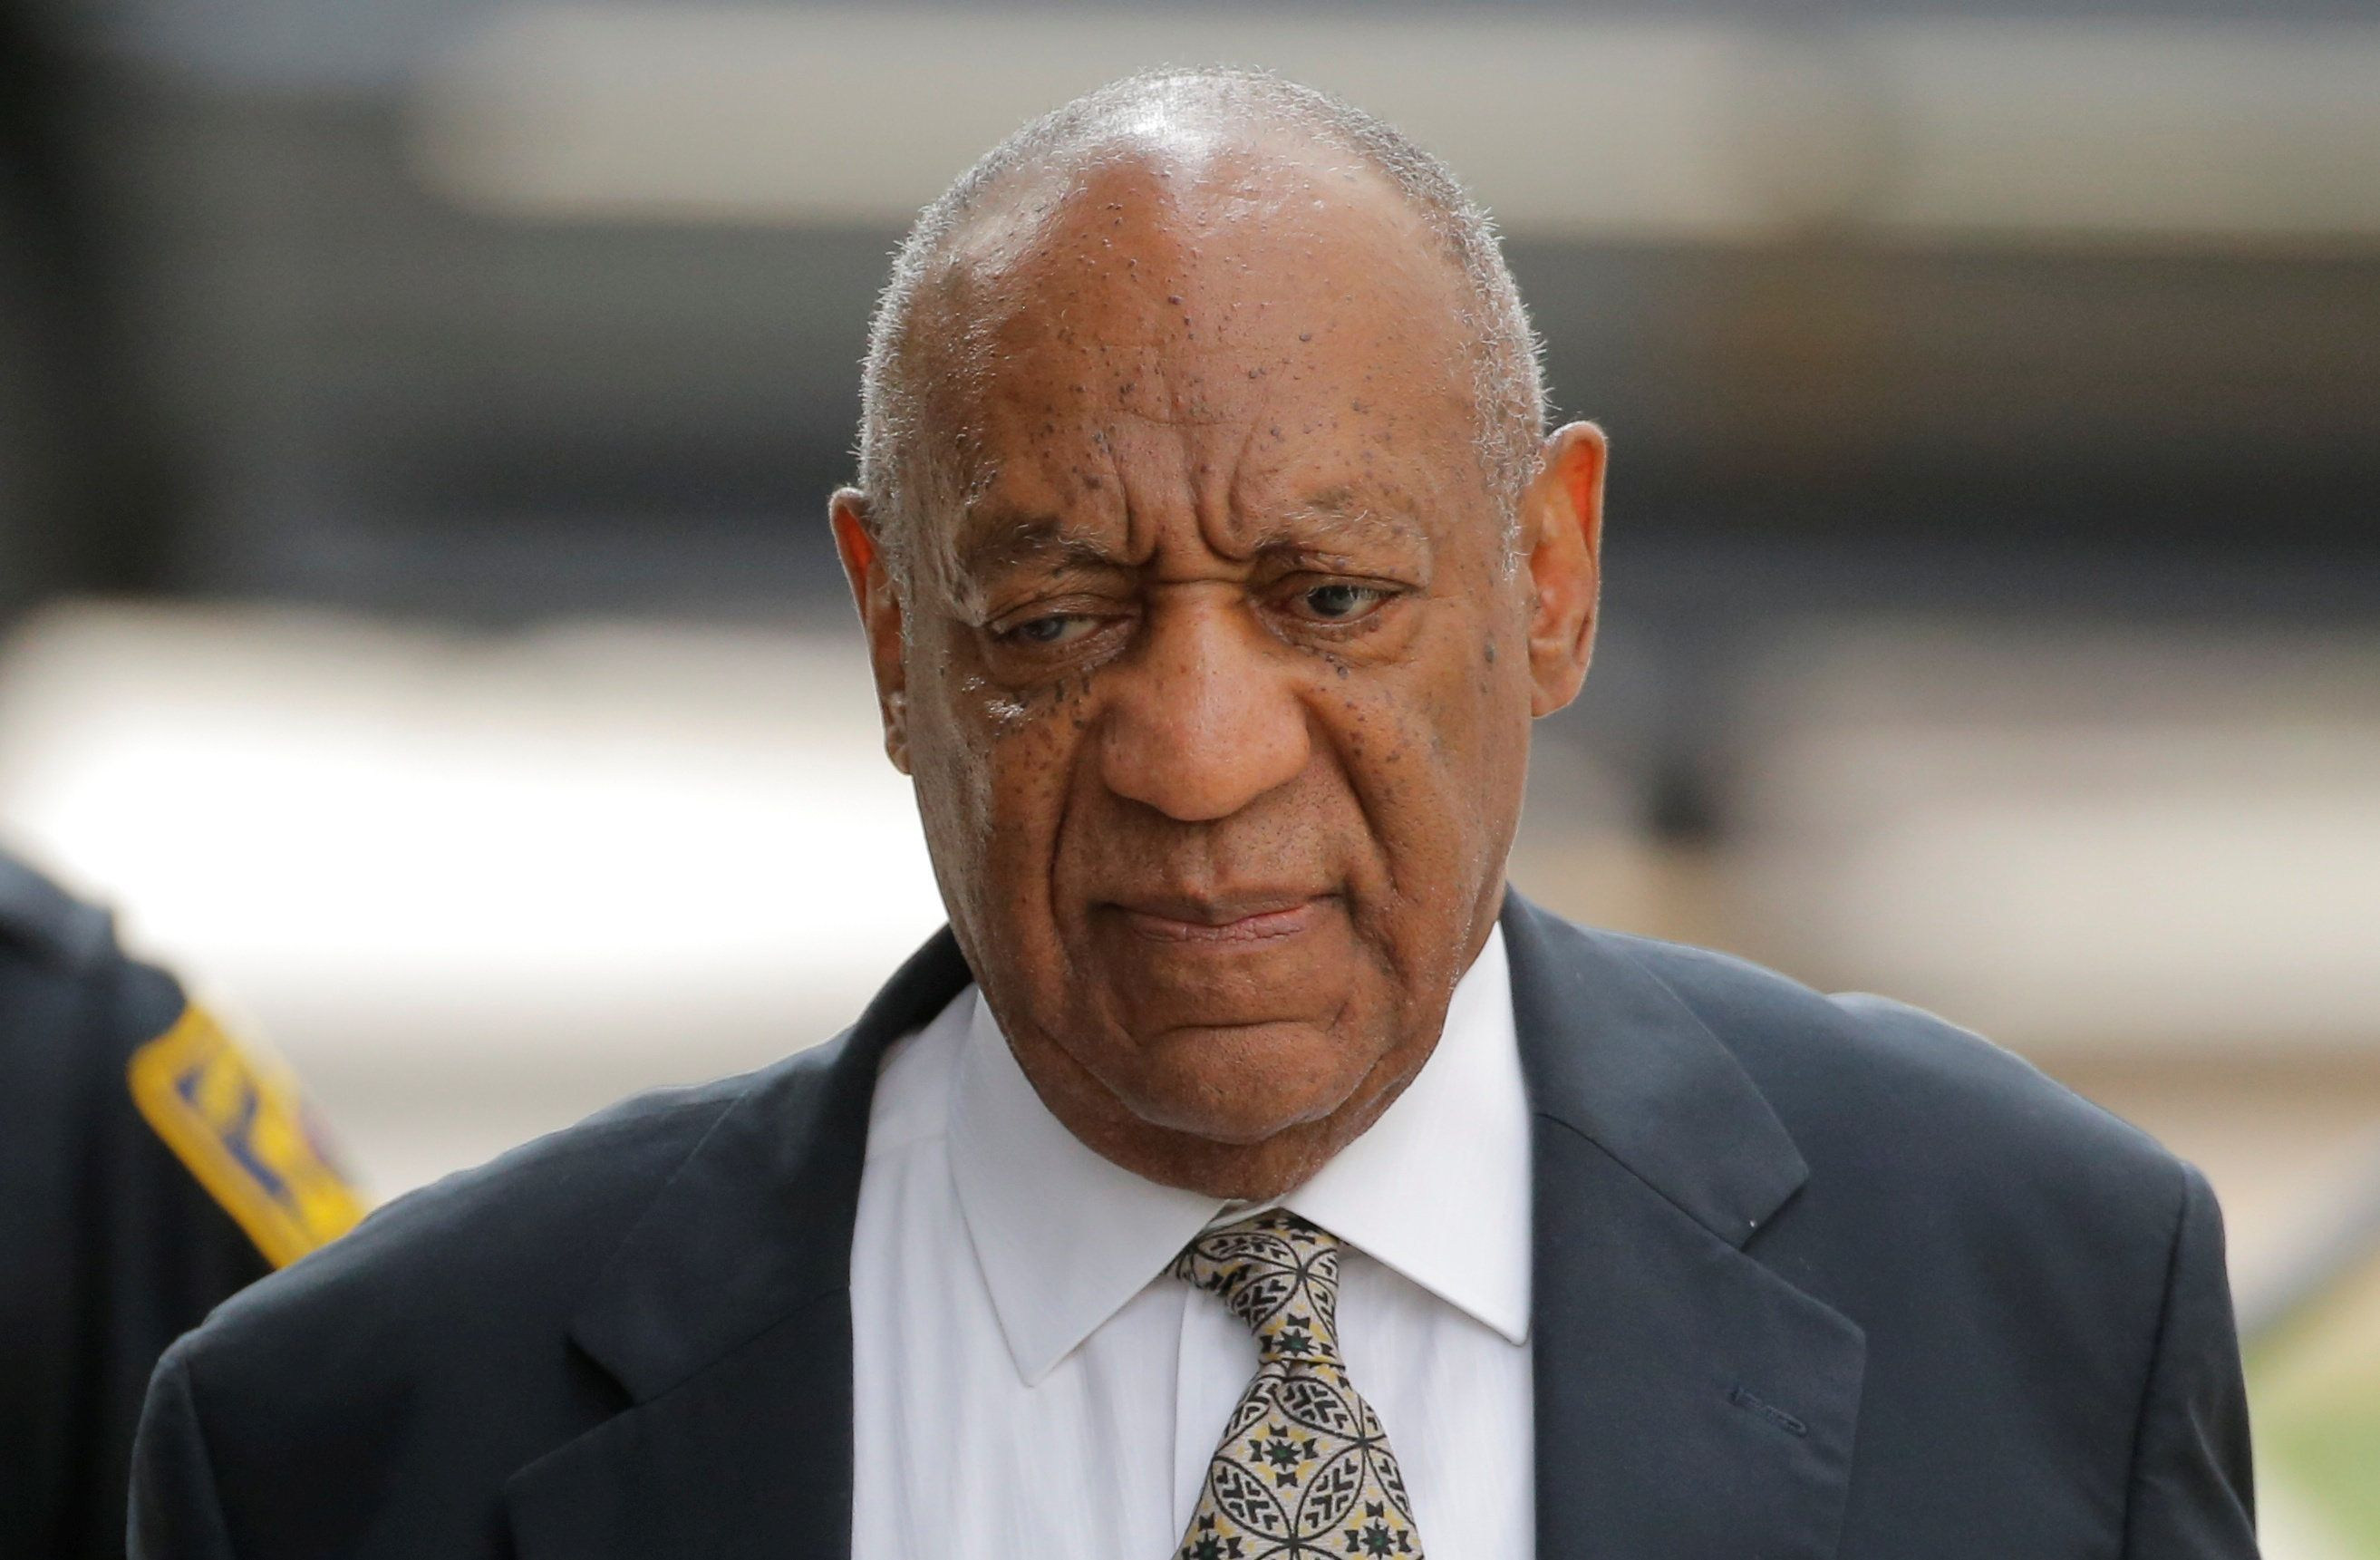 Actor and comedian Bill Cosby arrives for the fourth day of jury deliberation in his sexual assault trial at the Montgomery C